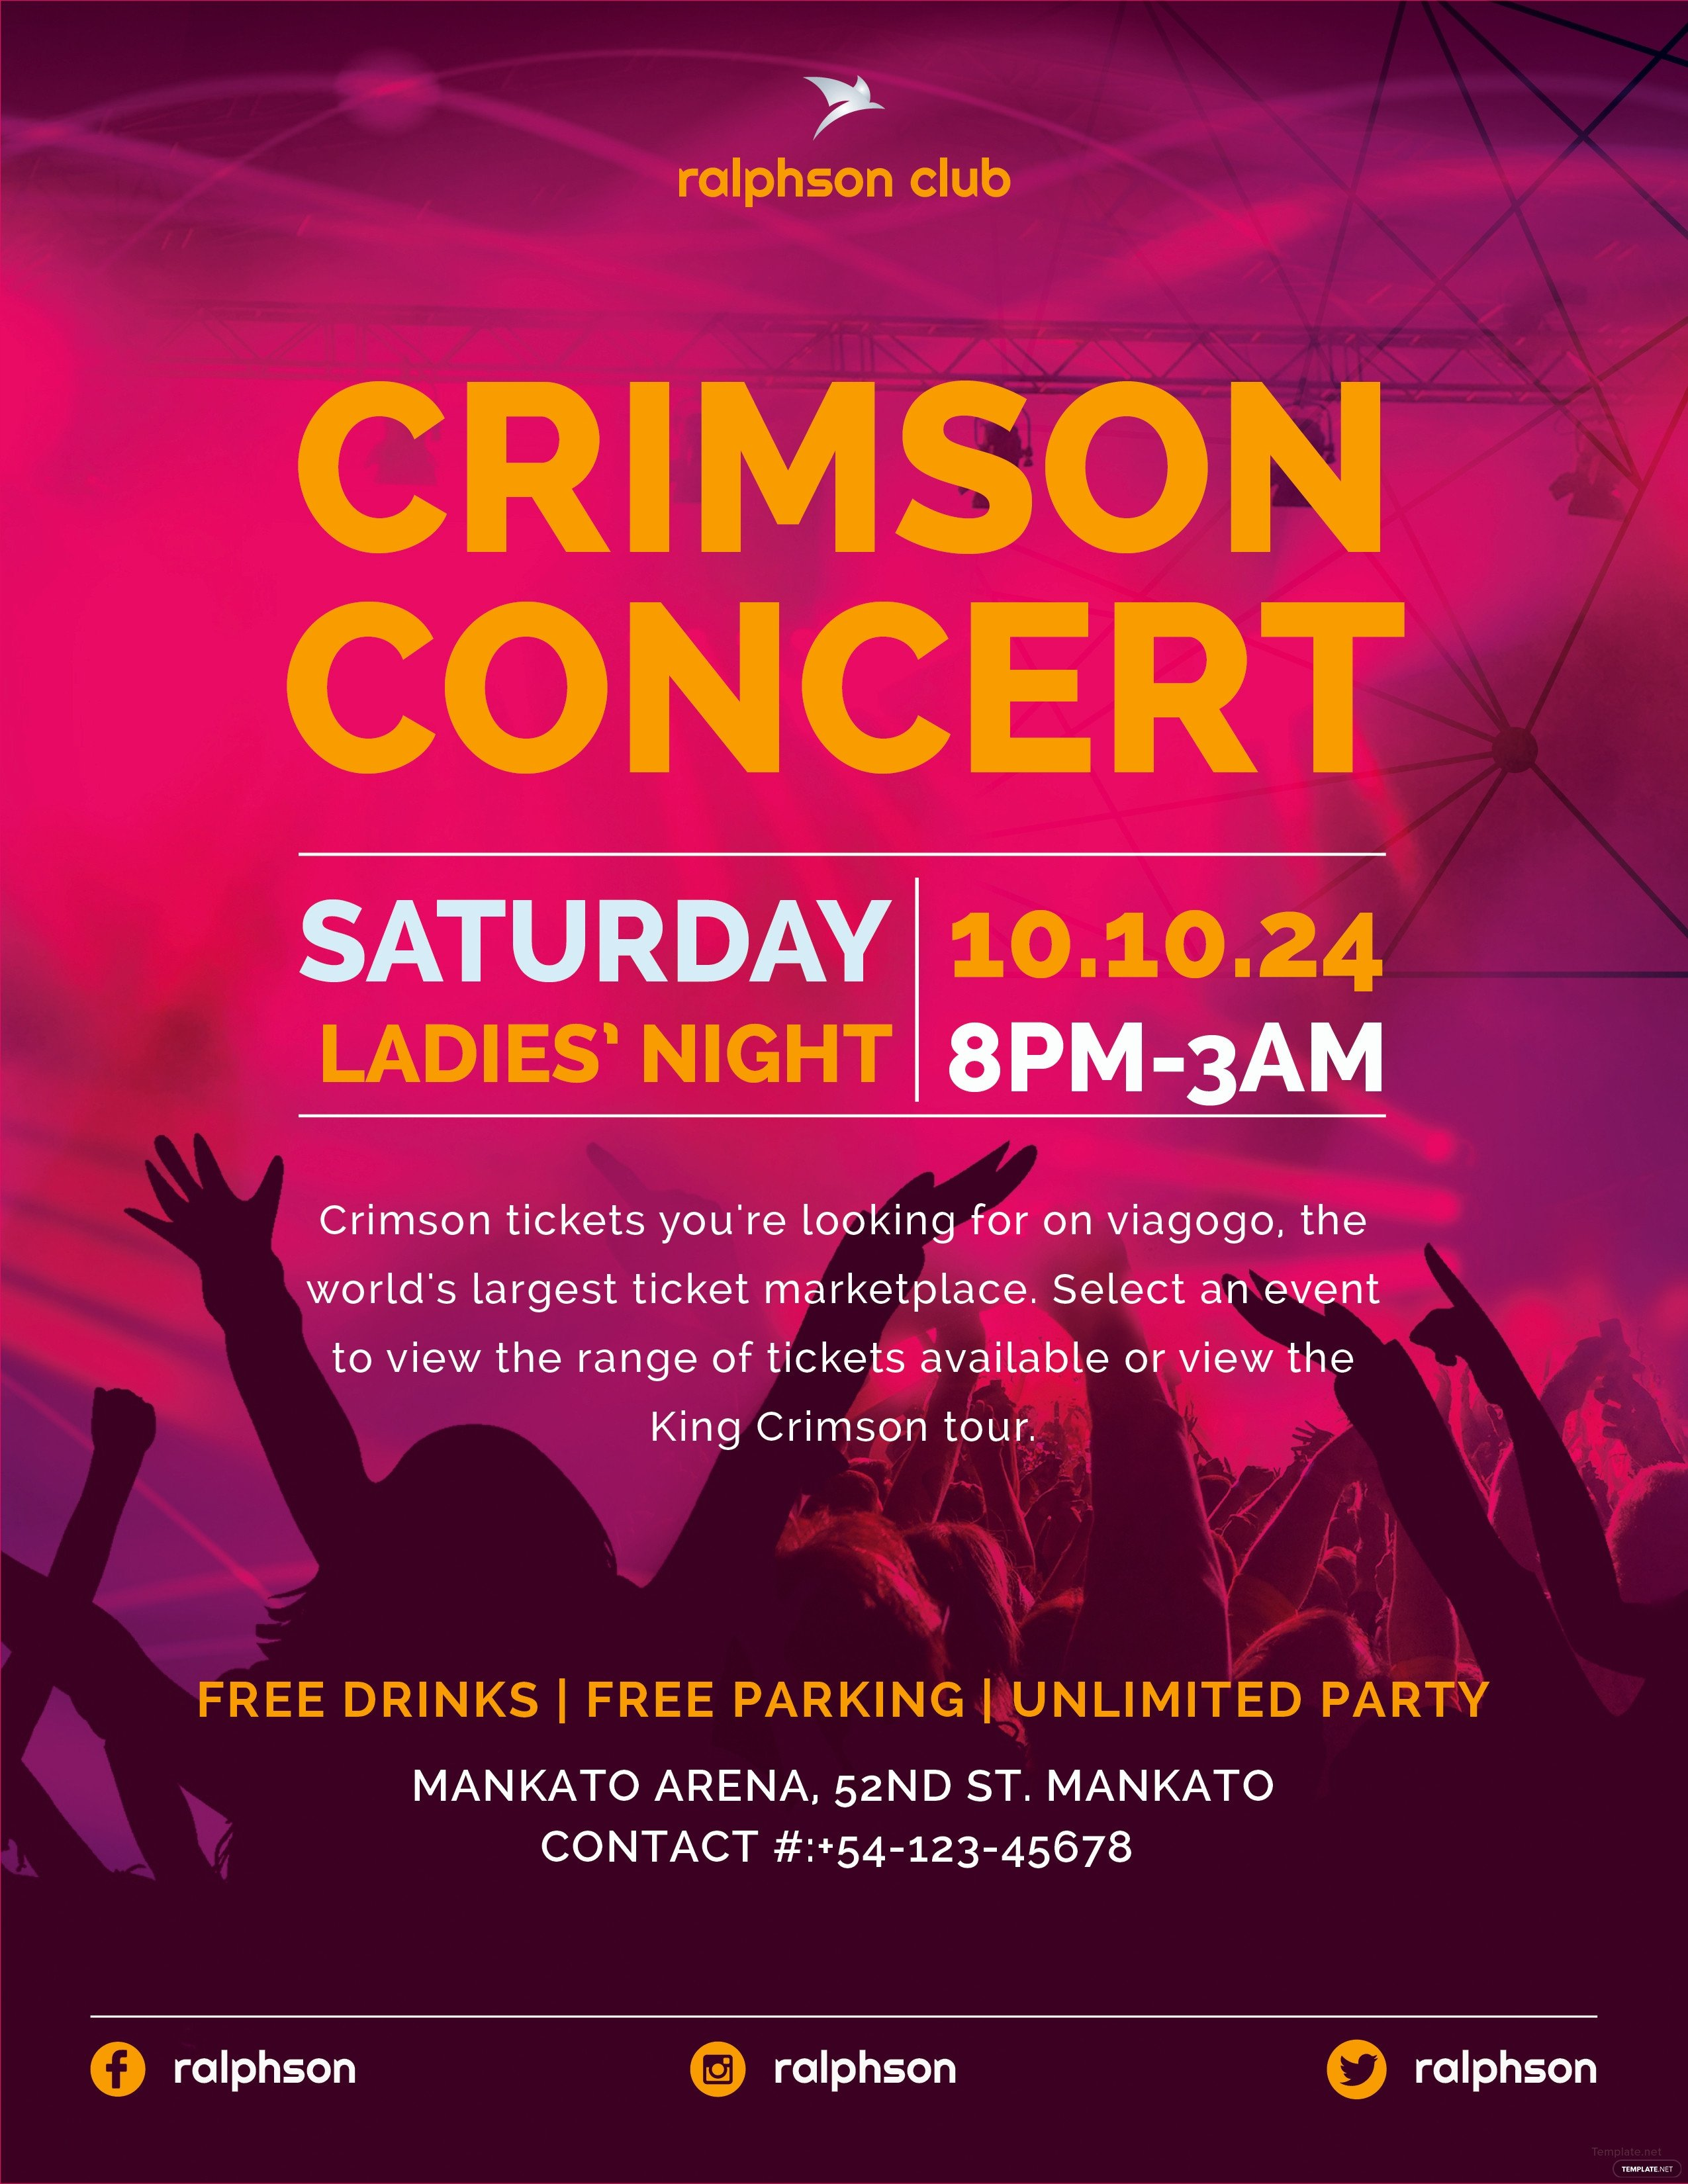 Concert Flyers Template Free Free Crimson Concert Flyer Template In Adobe Illustrator